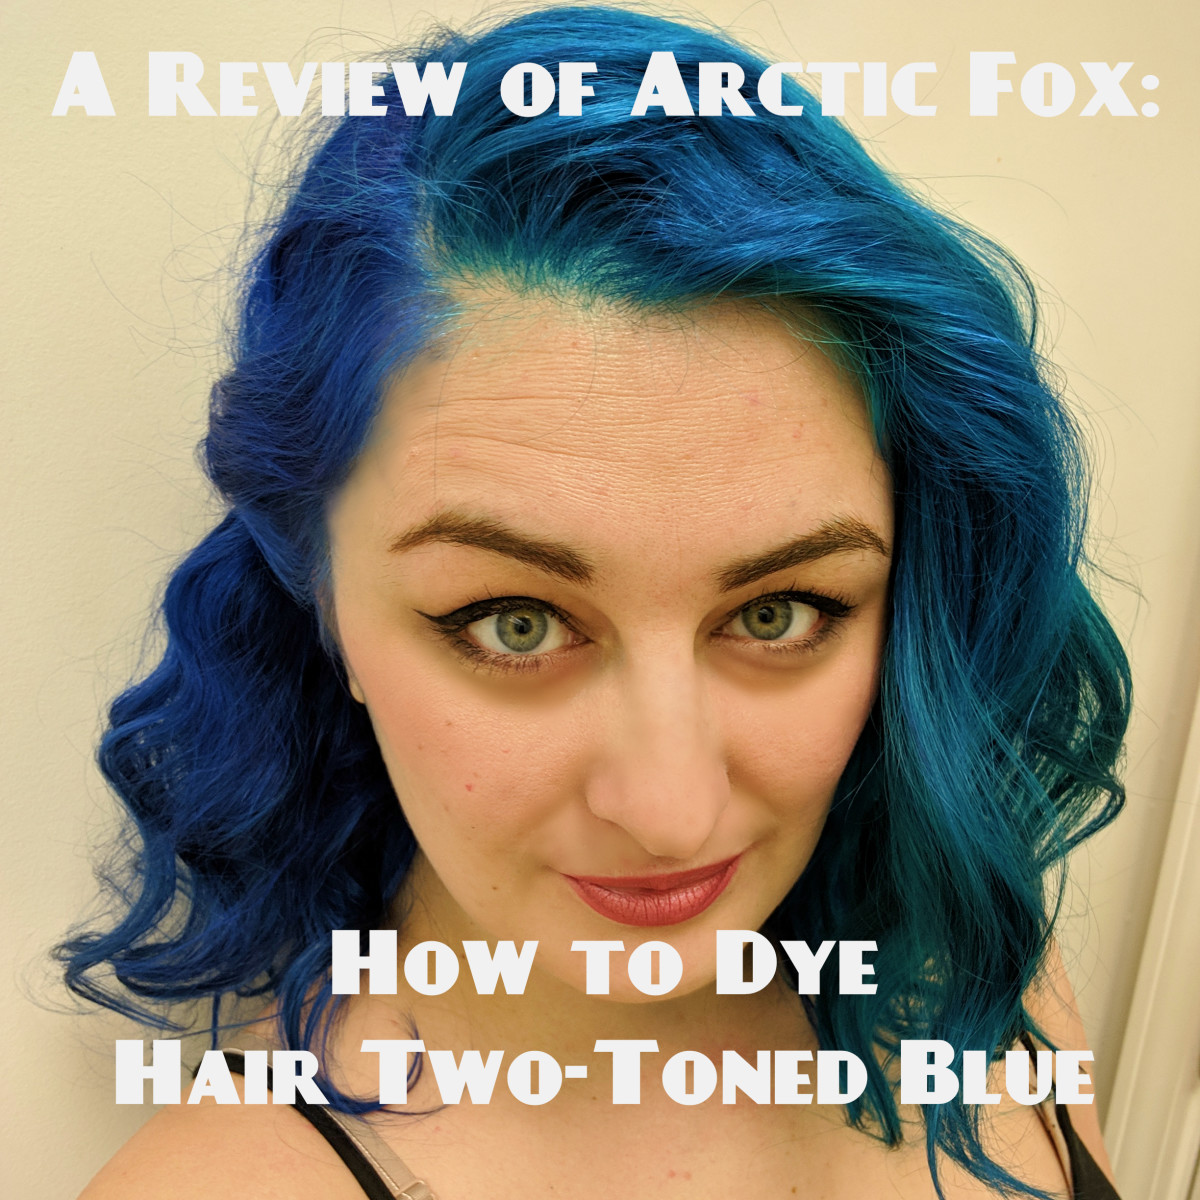 How To Dye Your Hair Two Toned Blue A Review Of Arctic Fox